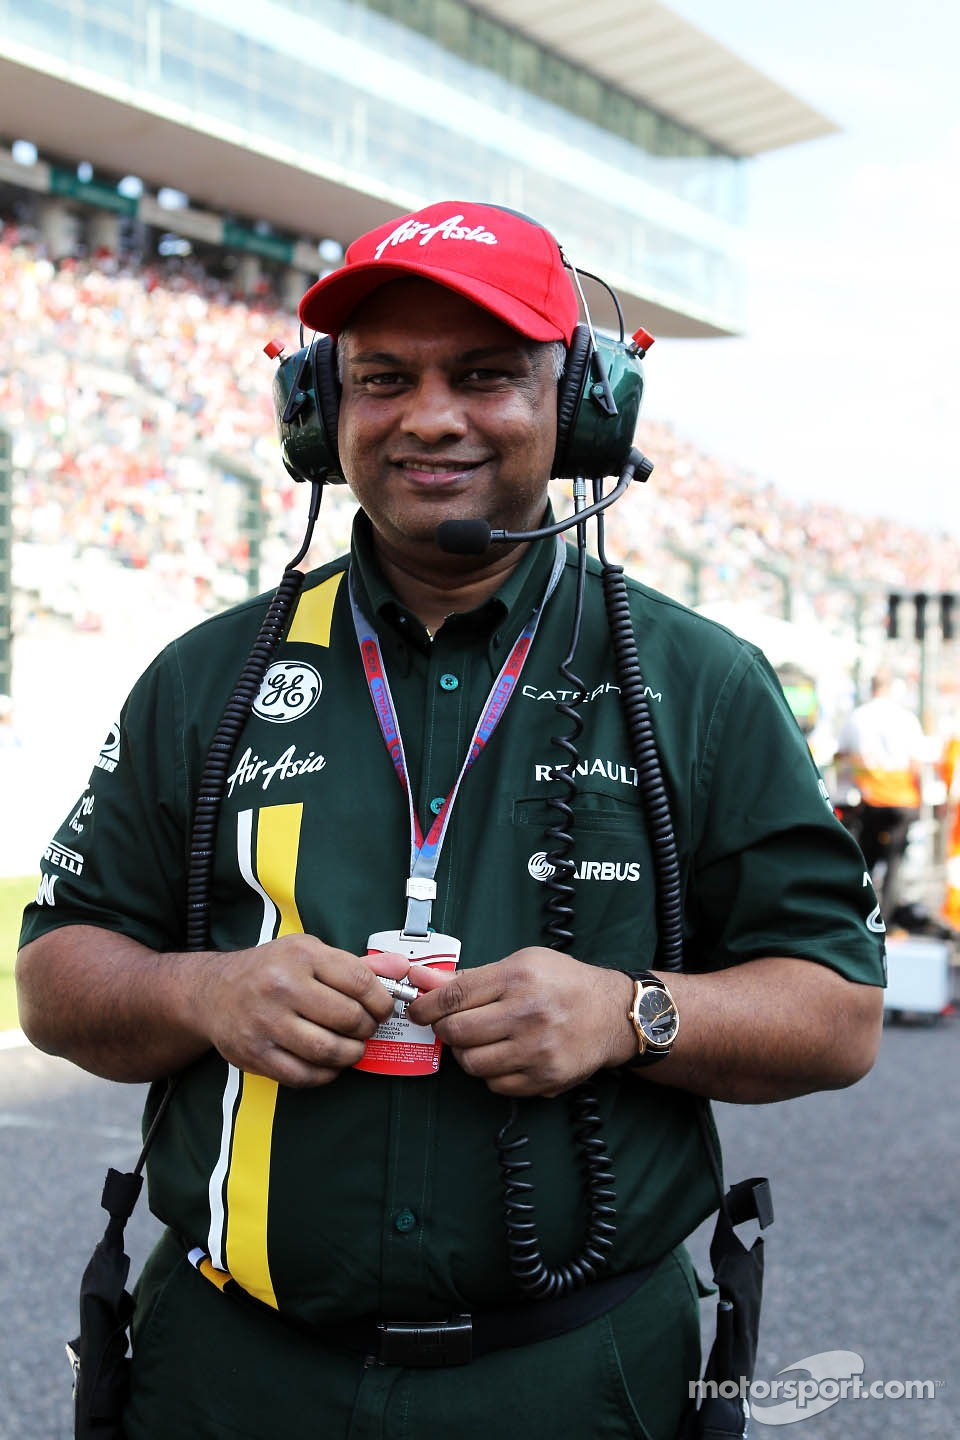 Tony Fernandes, Caterham Team Principal on the grid